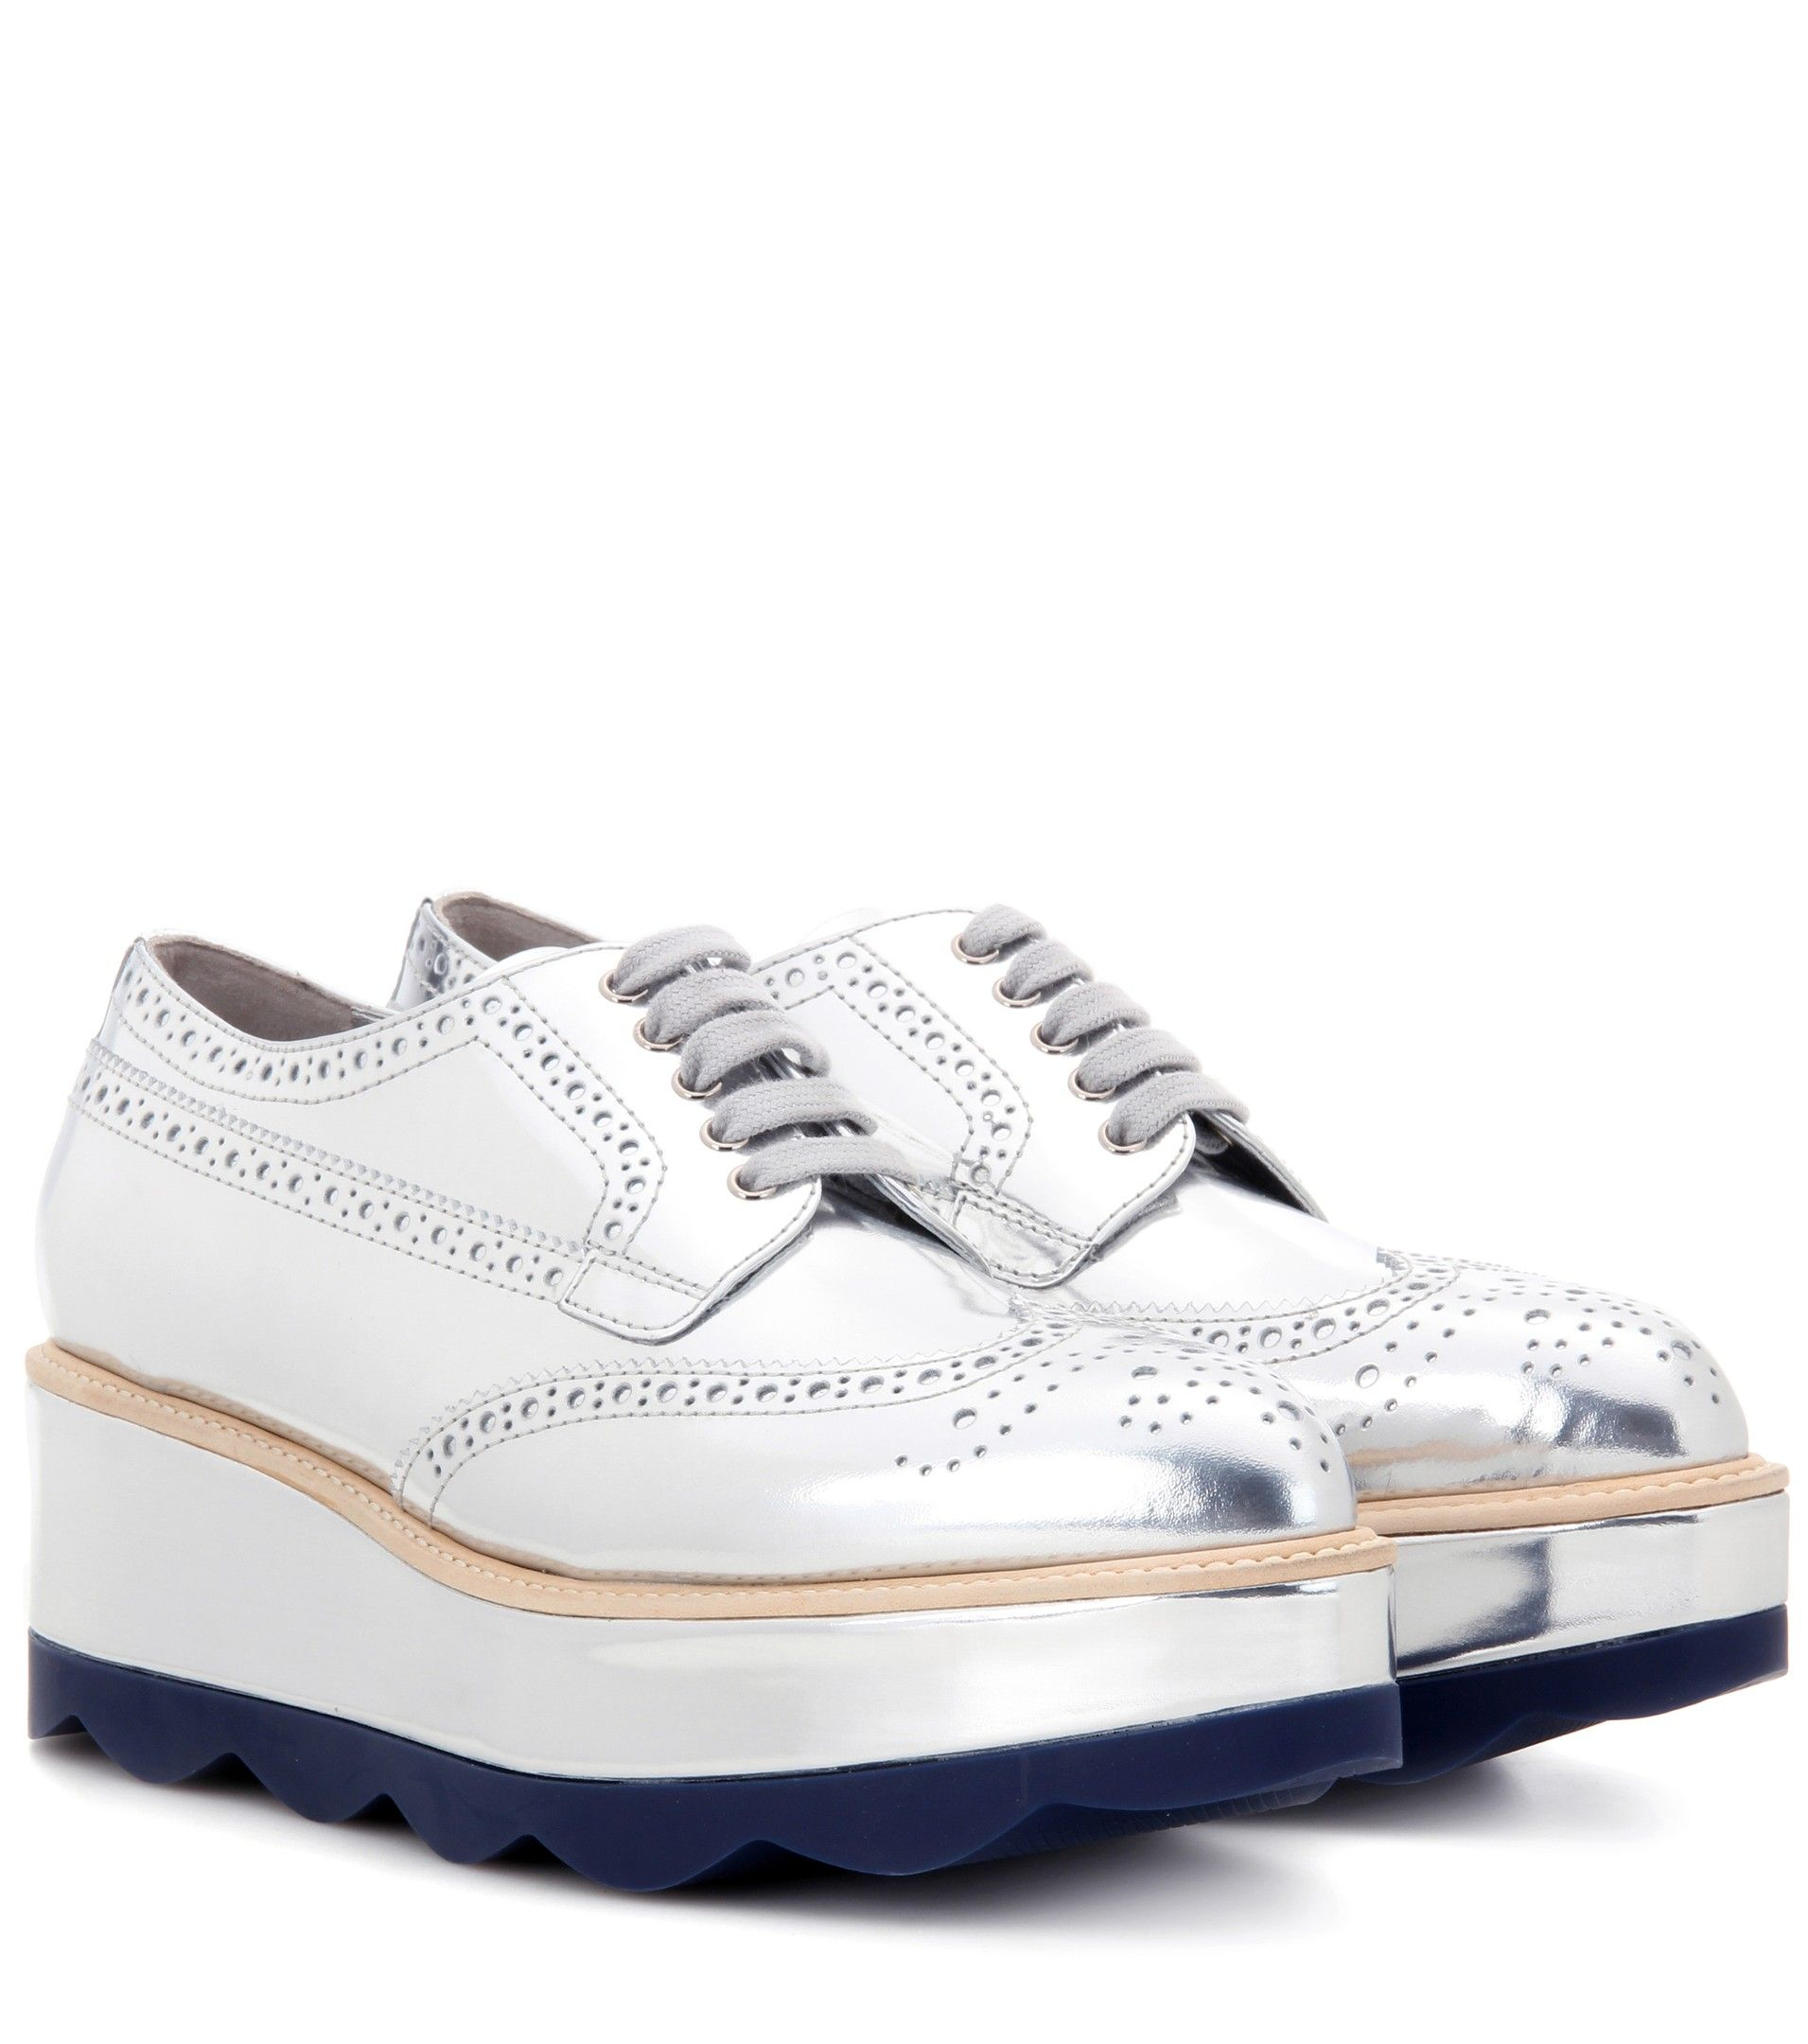 Metallic Leather Platform Brogues - Silver Prada Xo9ERj